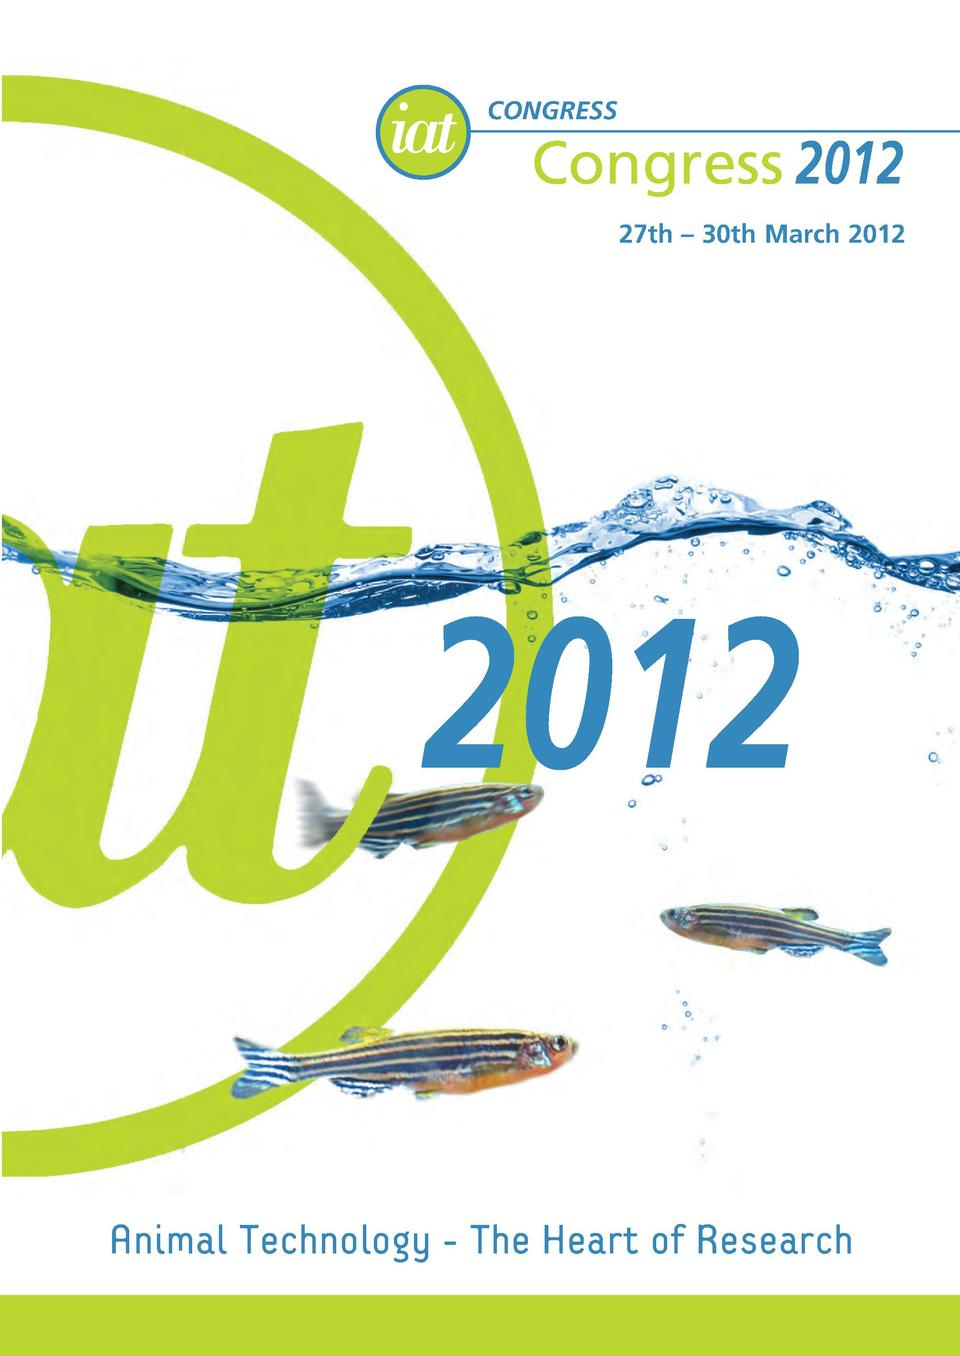 CONGRESS  Congress 2012 Congress 2012  27th     30th March 2012  www.iat.org.uk  2012  27th     30th March 2012  Animal Te...